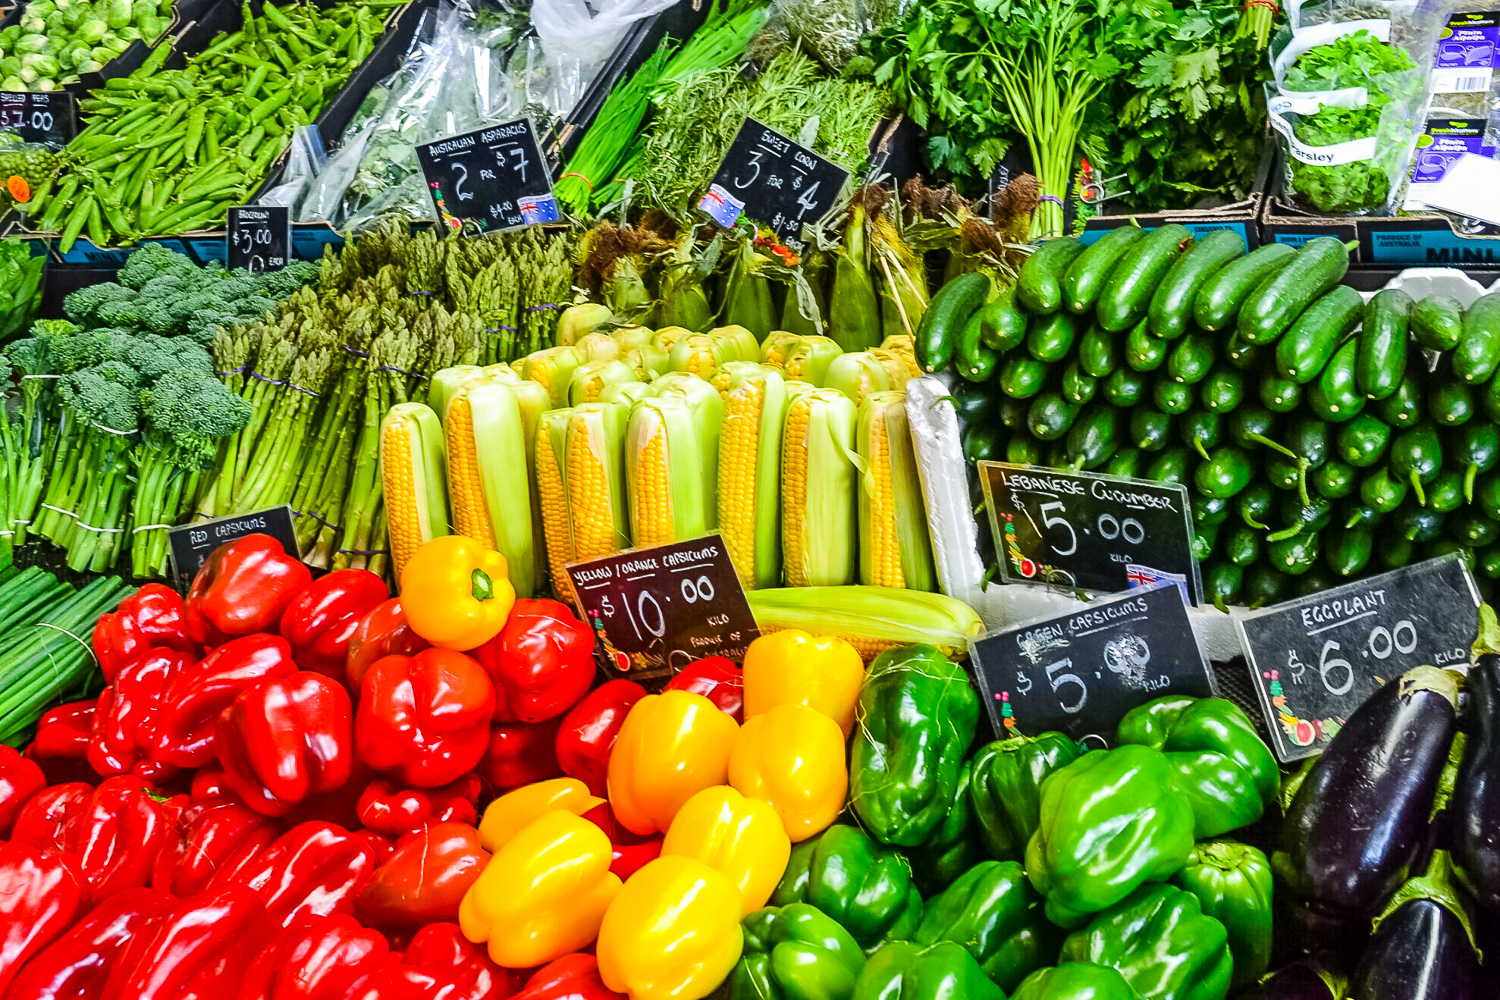 Vegetables at Queen Victoria Market Melbourne Australia - Photo by Julia Reynolds